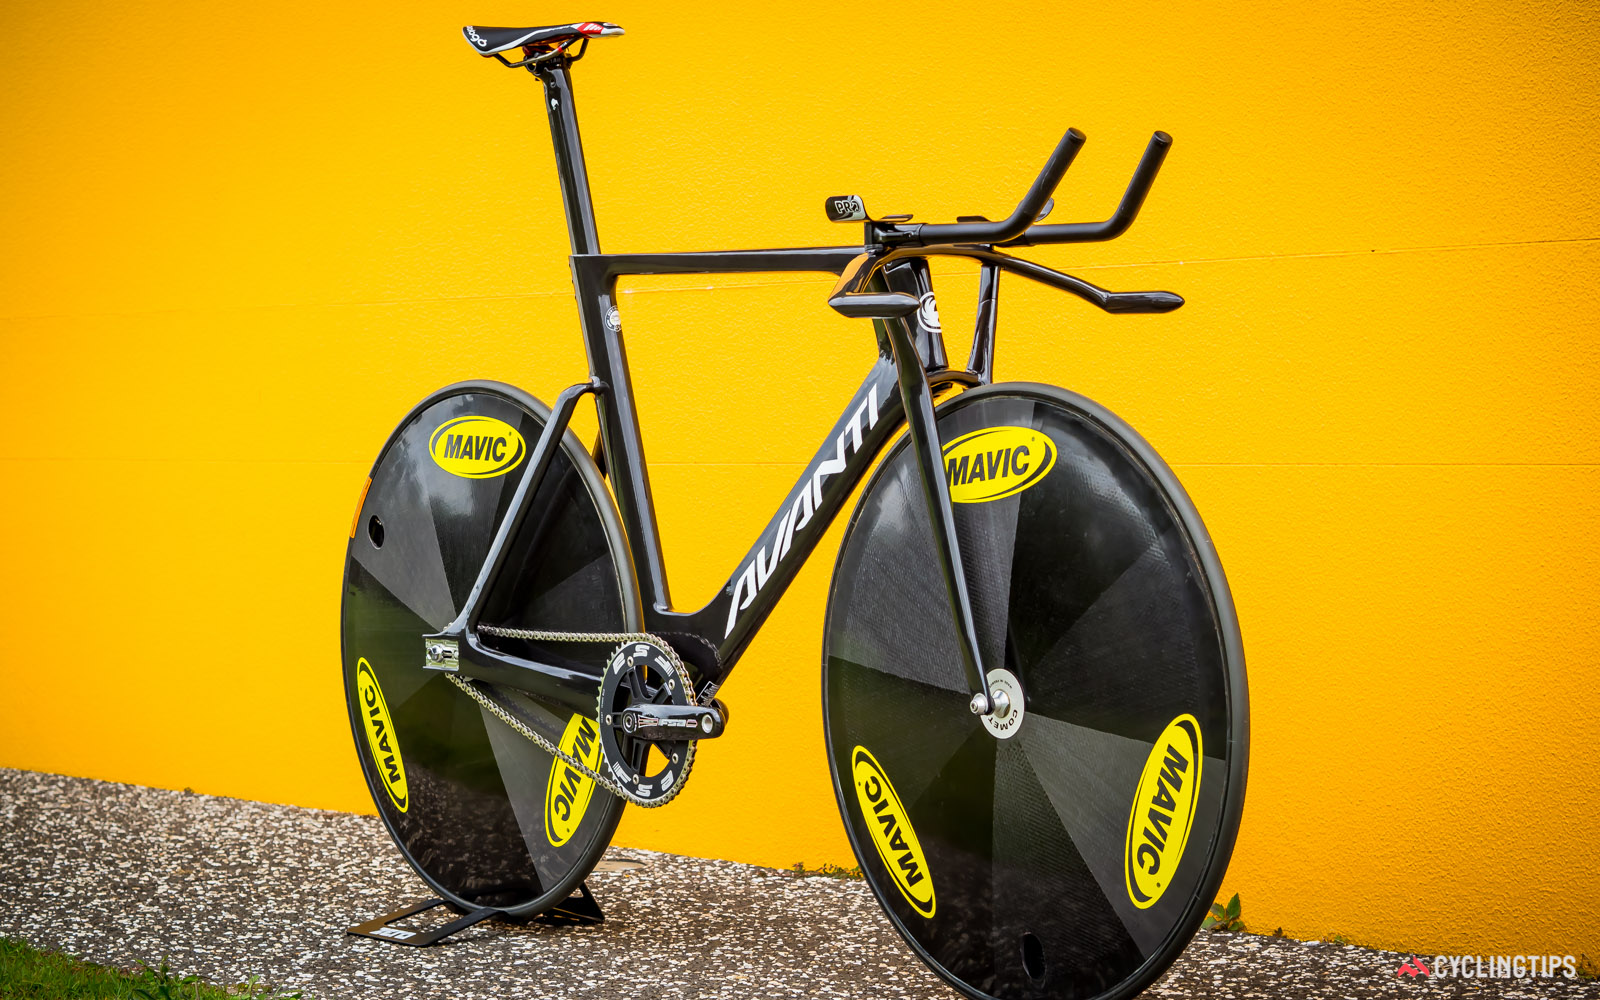 This is the production version of Avanti's Pista Pursuit Team frameset that is going to Rio, however there are no details on what kind of wheels and tyres the New Zealand team will be using.